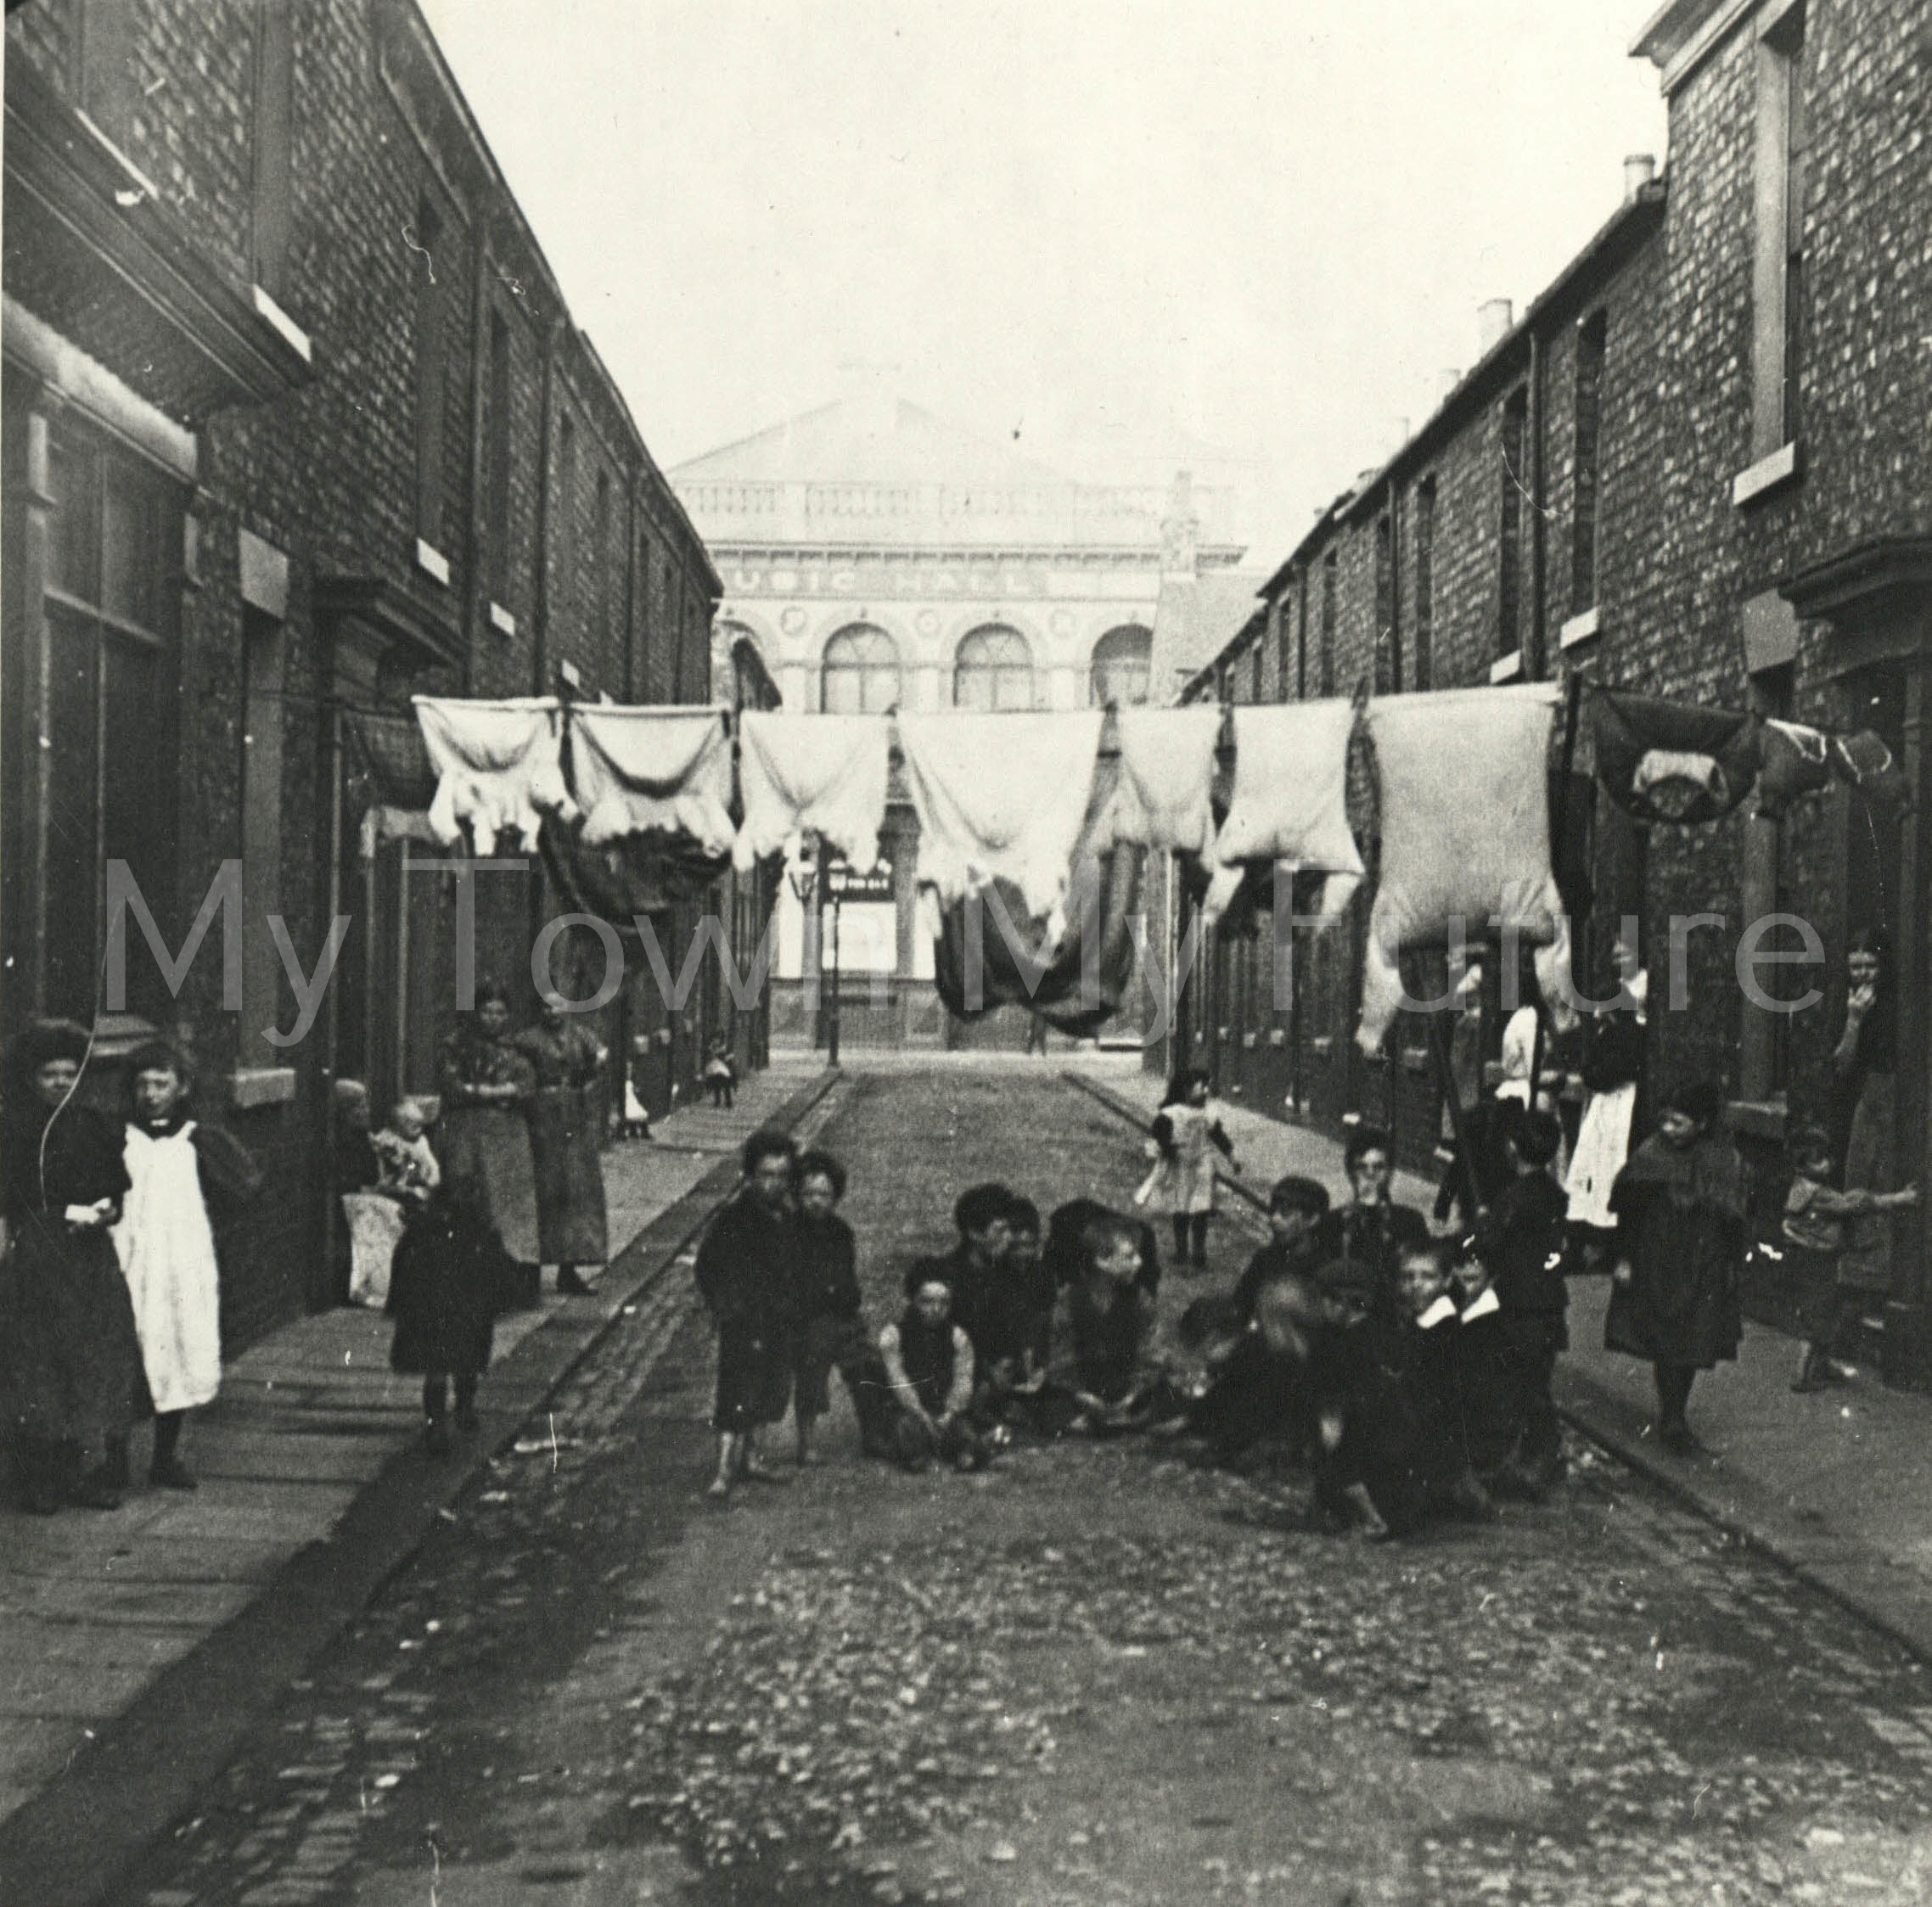 Tyne Street, Middlesbrough. The Oxford Music Hall on Lower Feversham Street is visible.